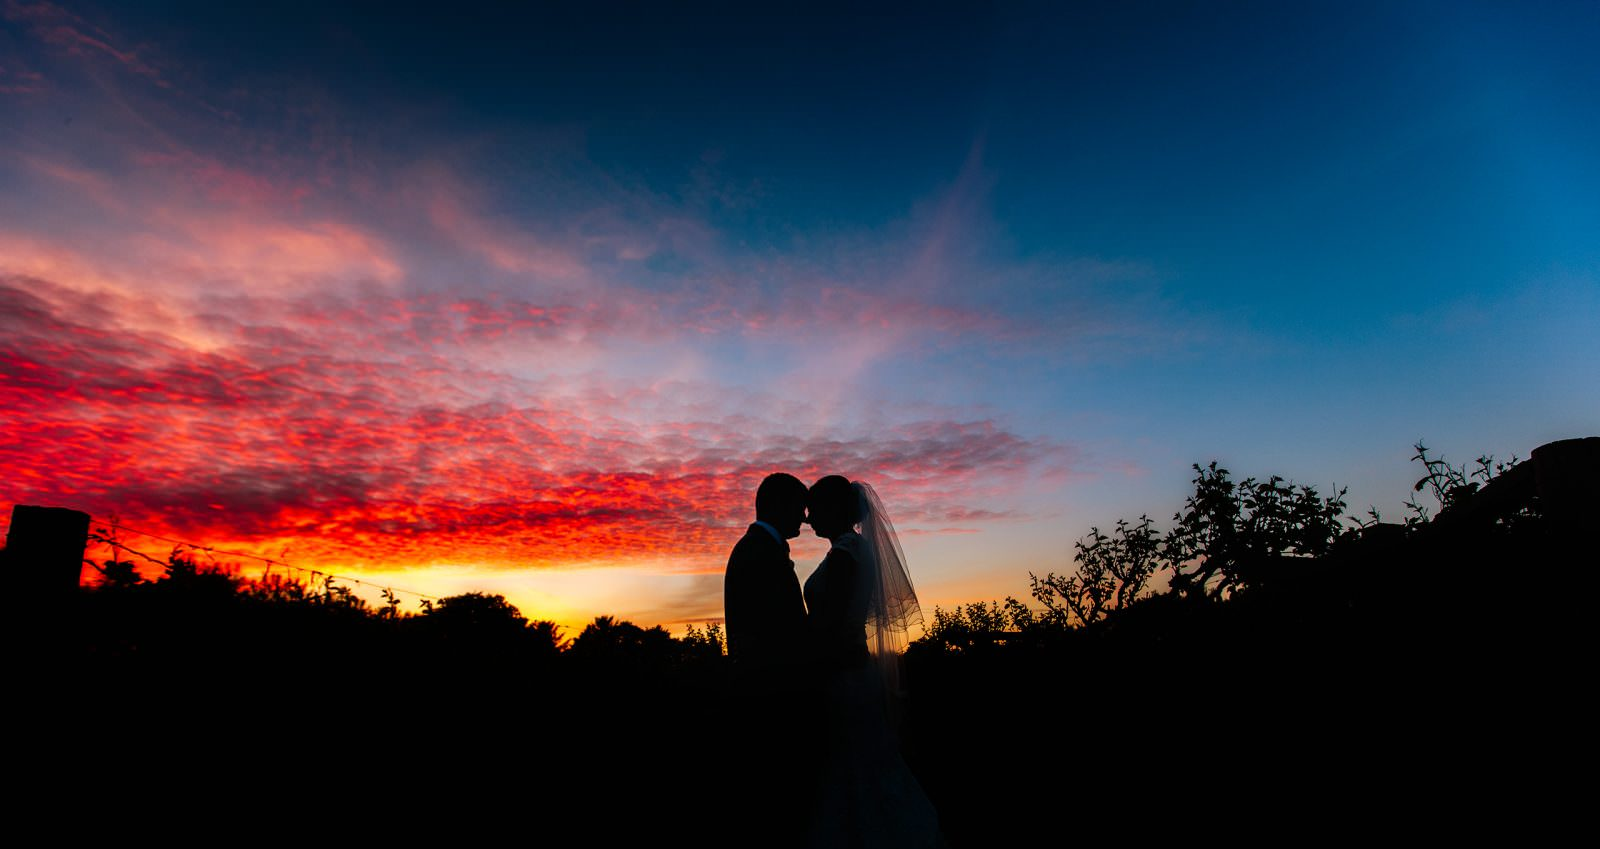 wedding photographer in Shropshire and the magic of a wedding day